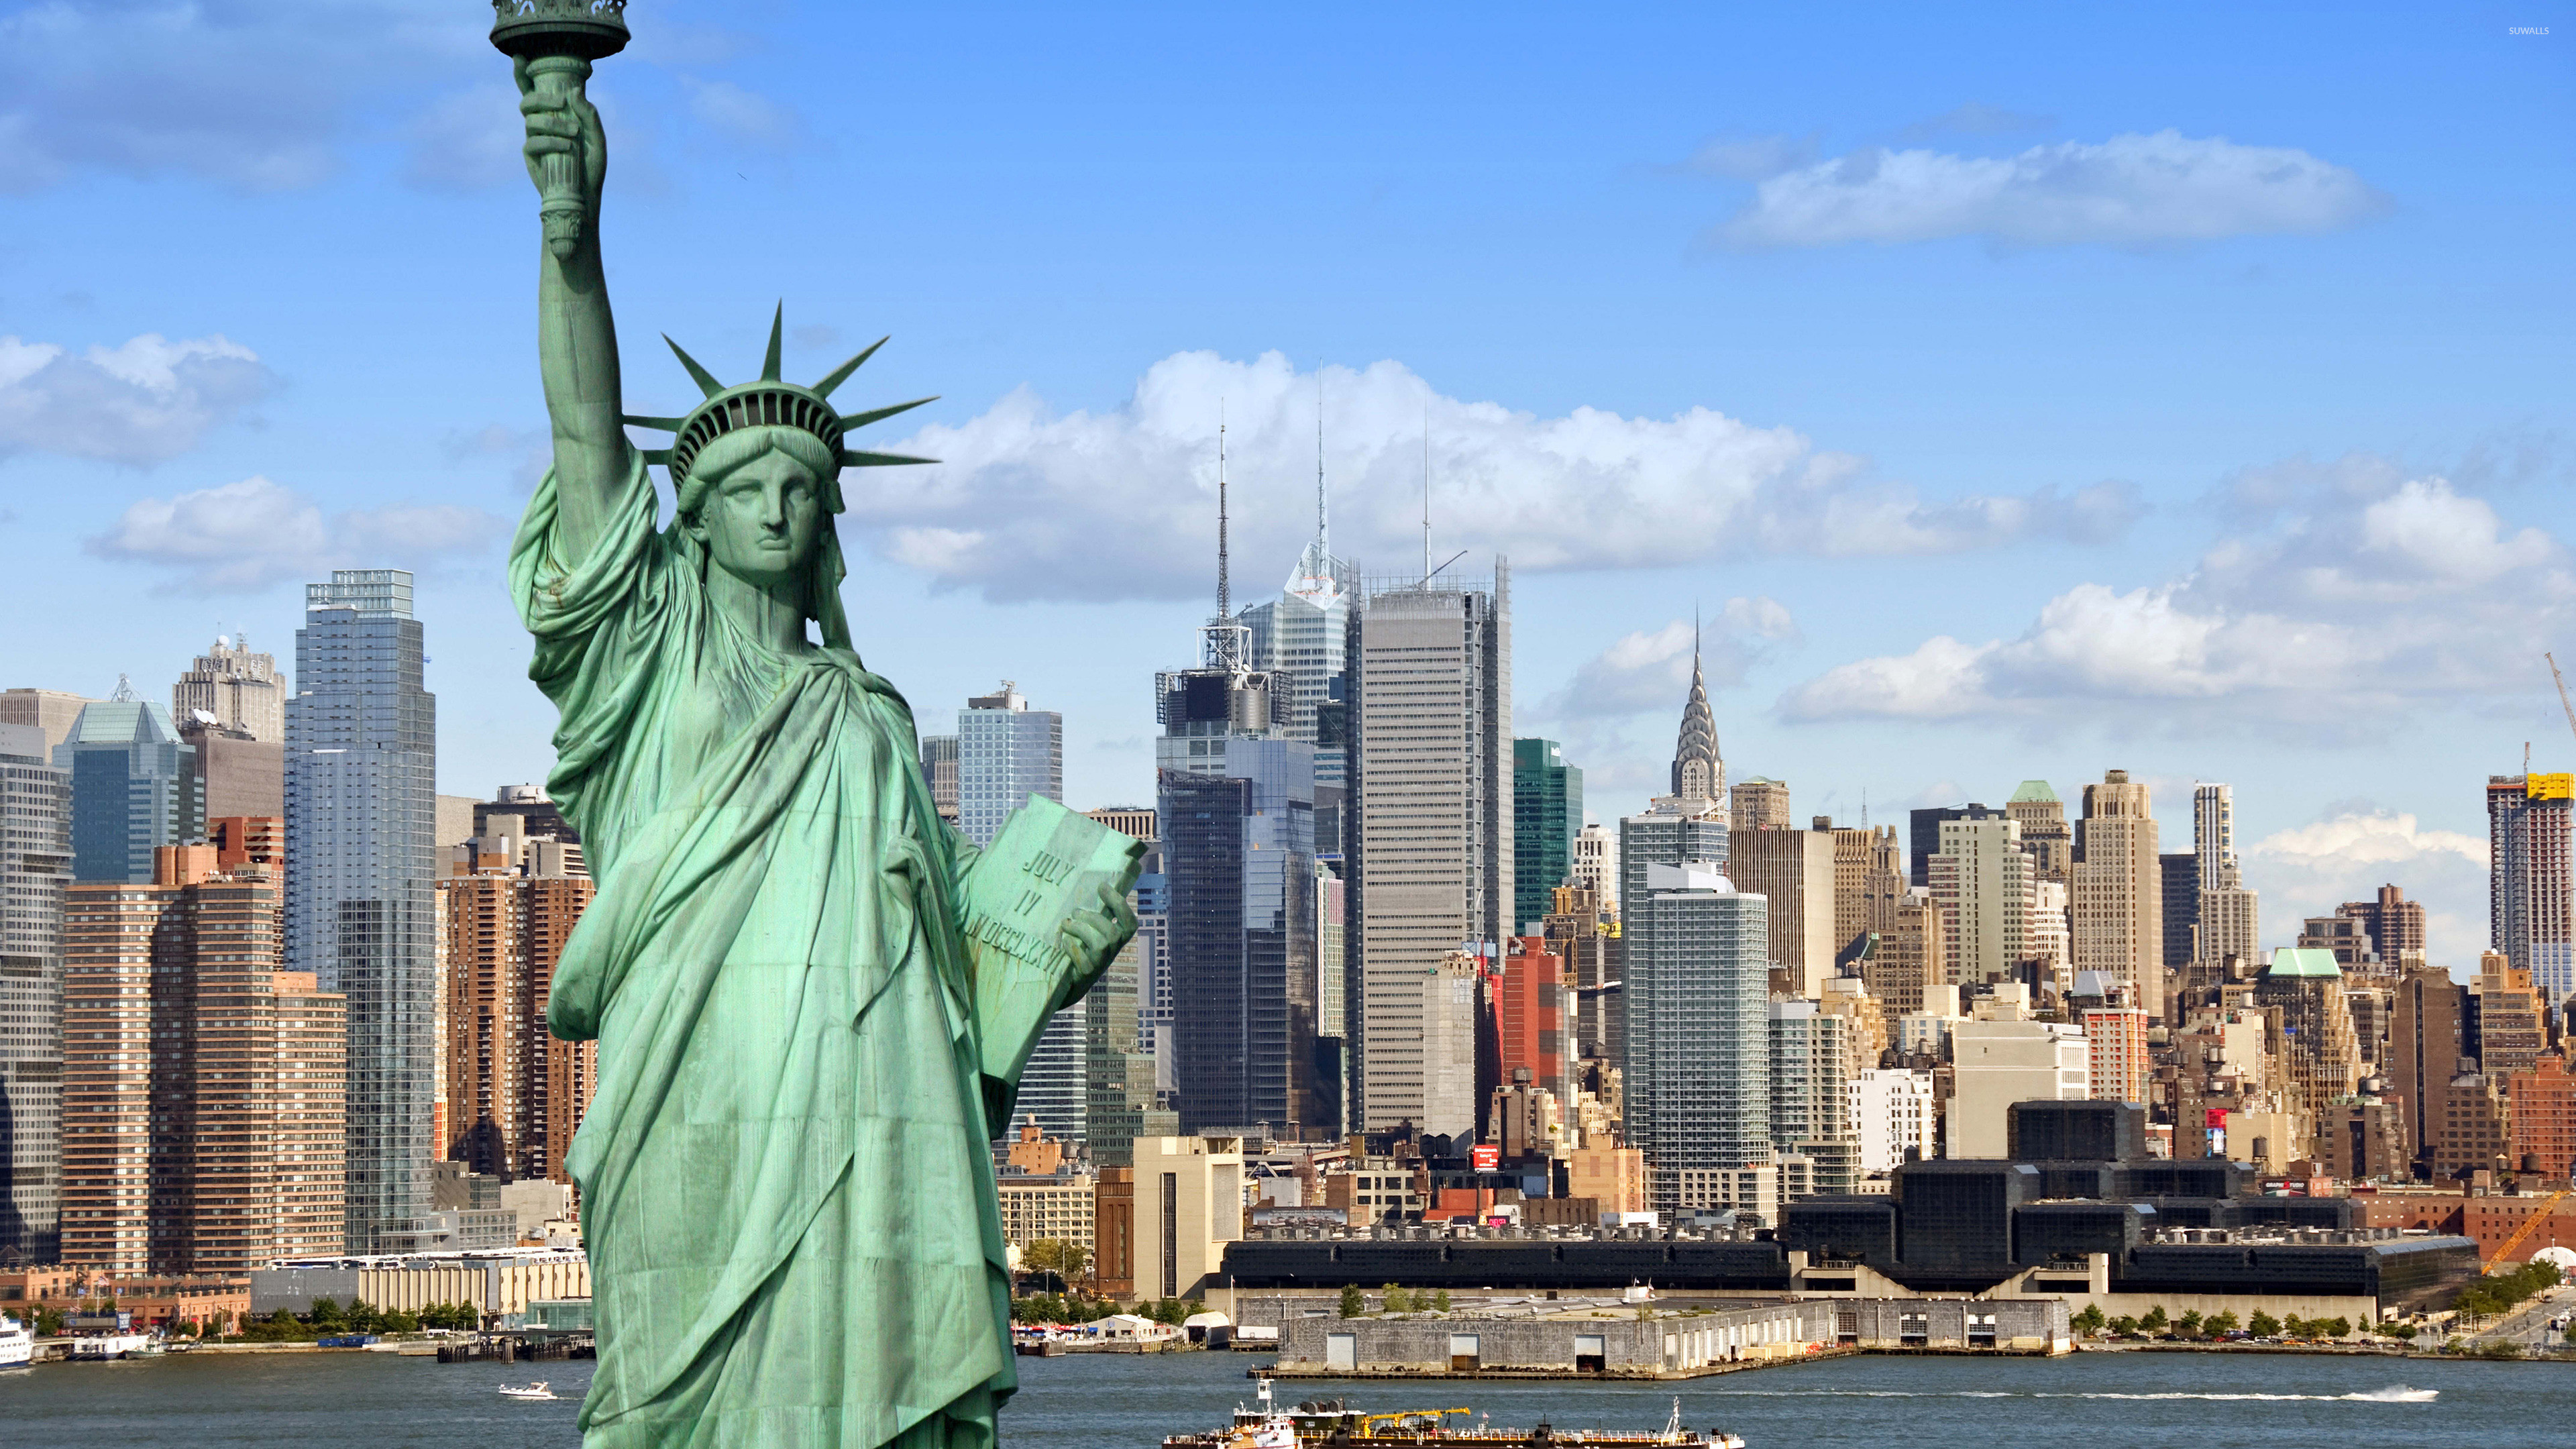 Great Statue of Liberty